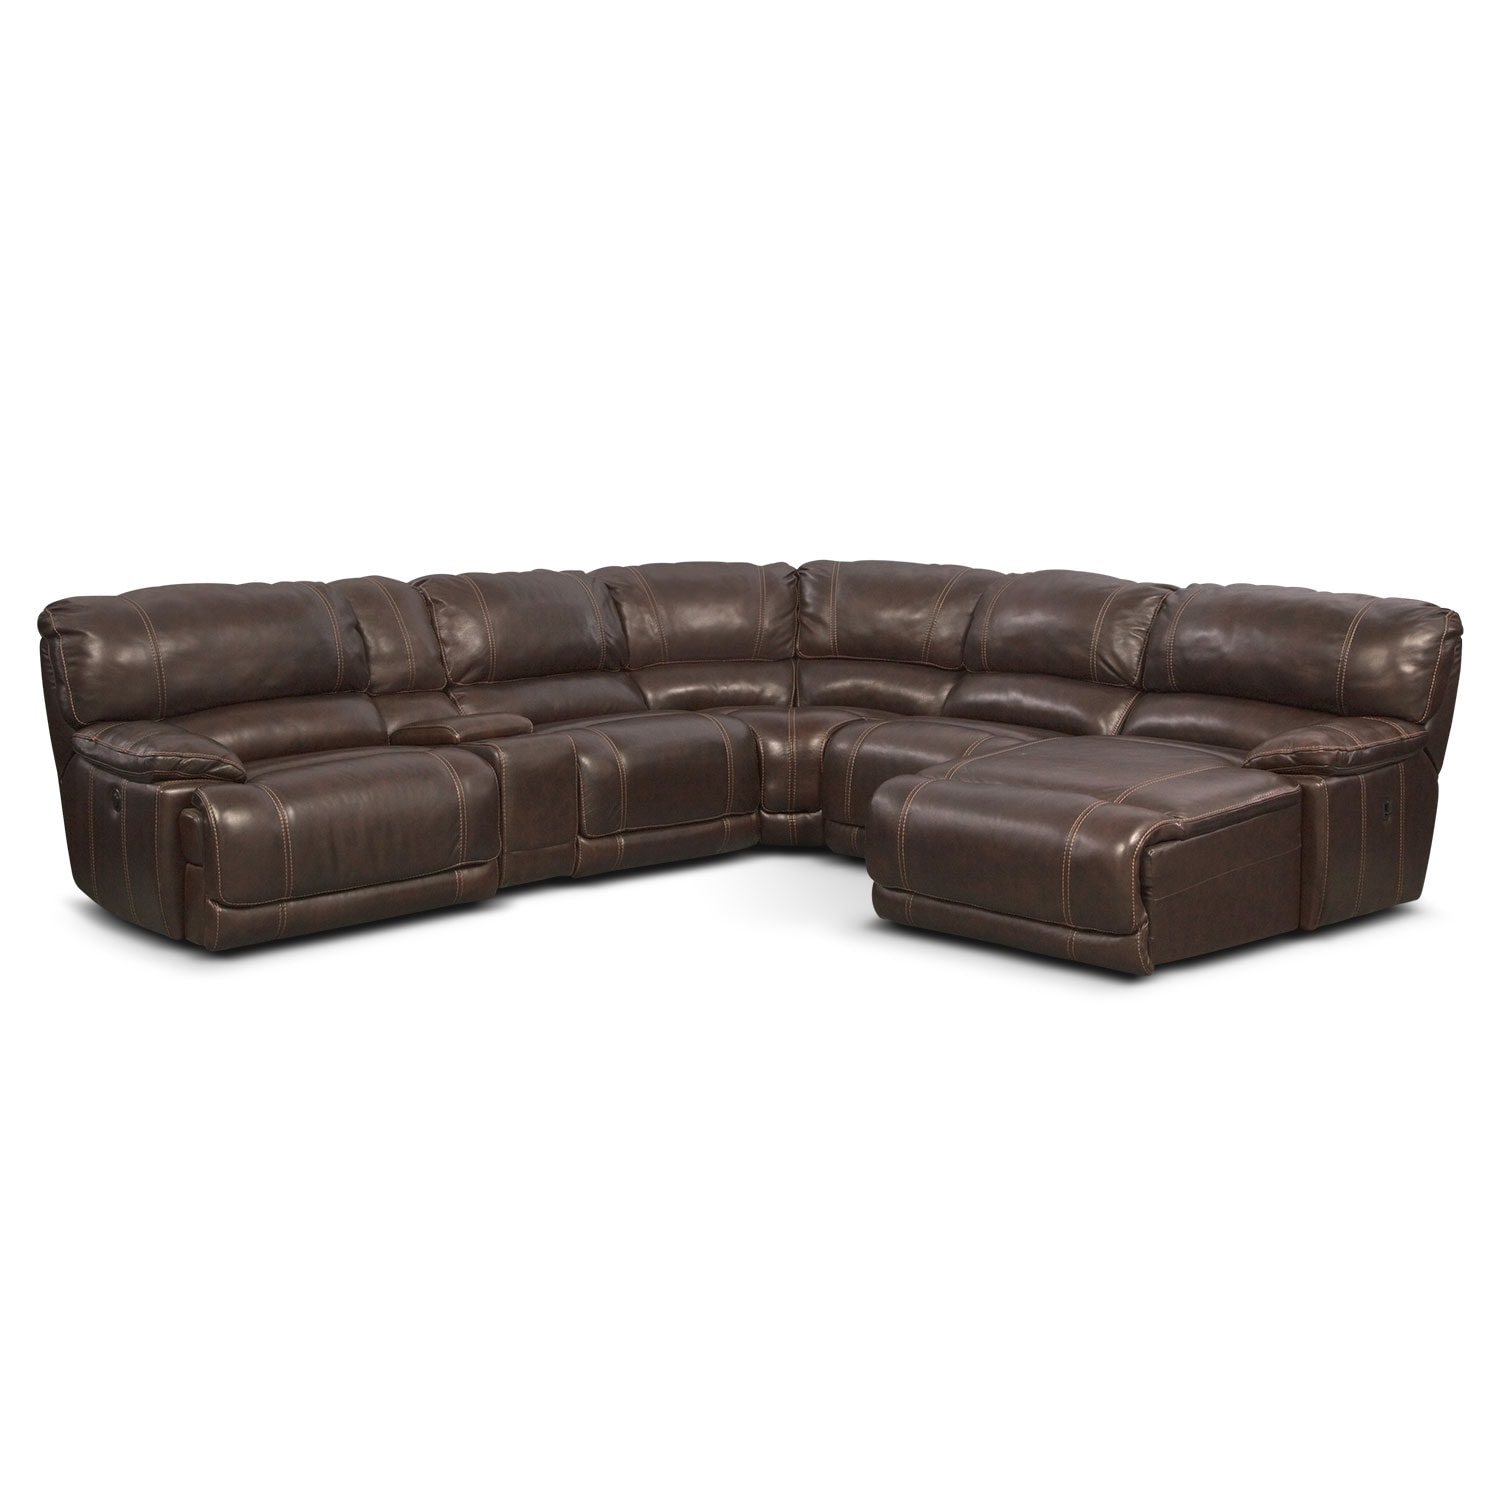 [St. Malo 6 Pc. Power Reclining Sectional]